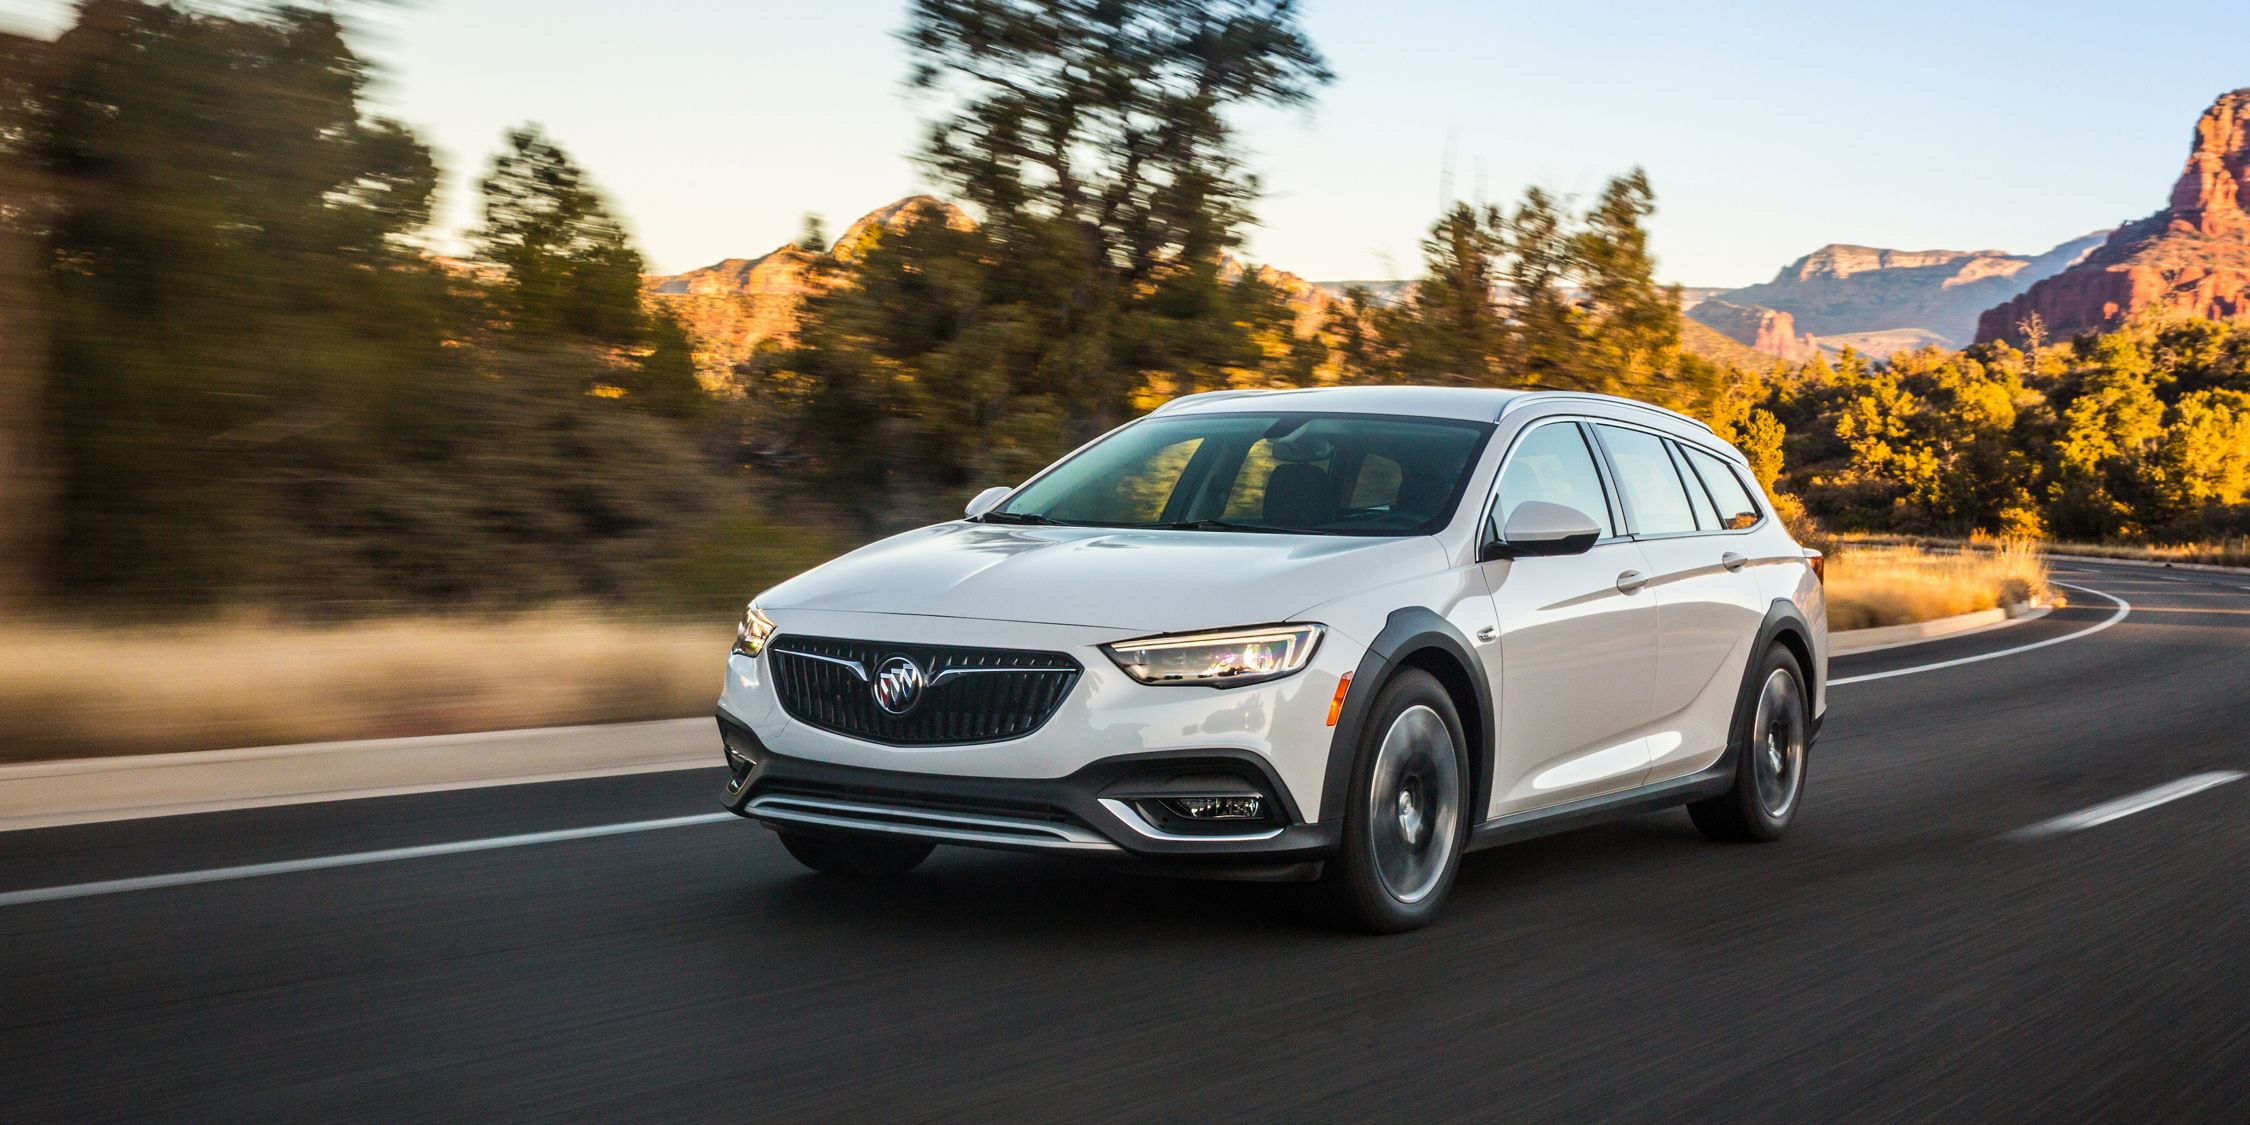 2018 Buick Regal TourX Wagon First Drive | Review | Car and Driver